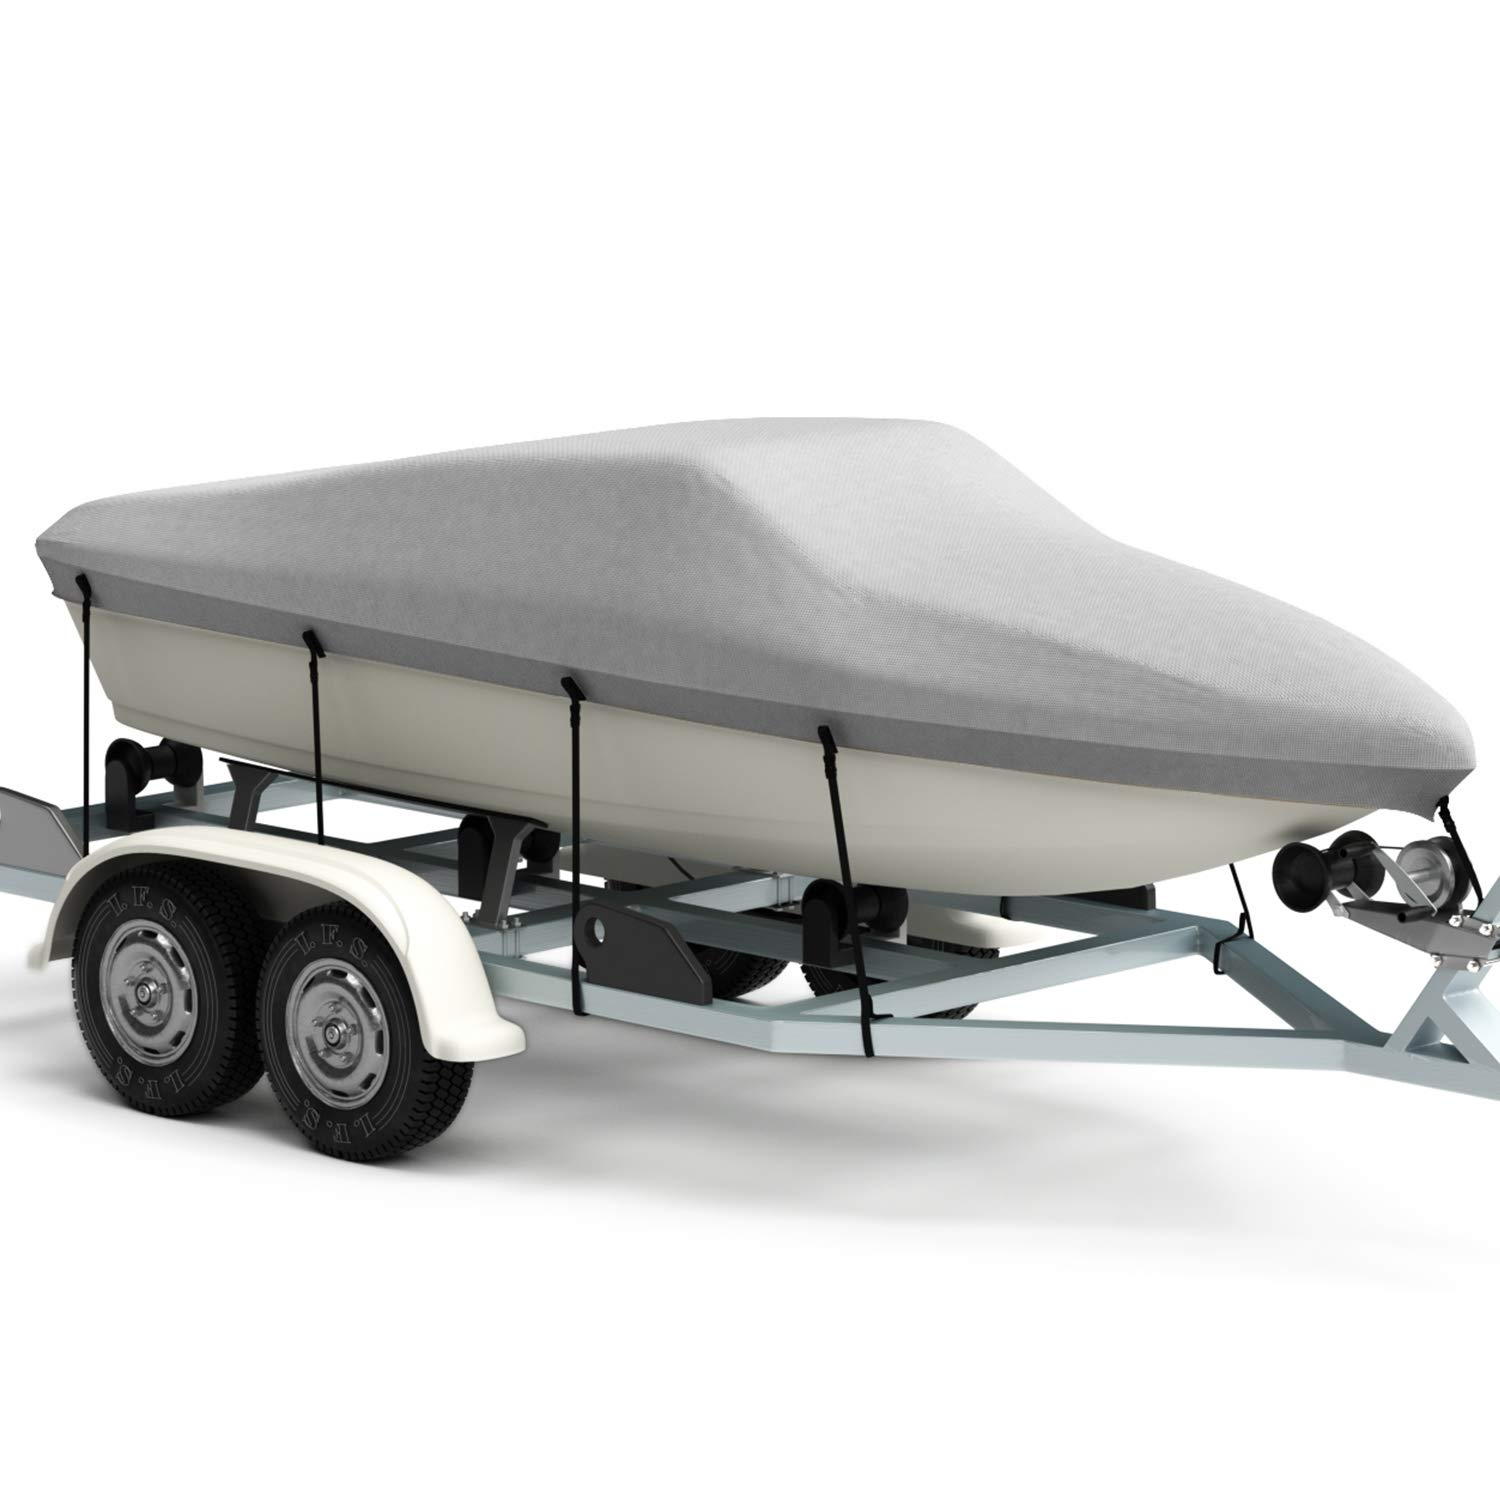 Kohree Trailerable Runabout Boat Cover Fit V-Hull Tri-Hull Fishing Ski Pro-Style Bass Boats,Heavy Duty 600D Polyester 14~16x68 Heavy Duty 600D Polyester 14/'/'~16/'/'x68/'/'